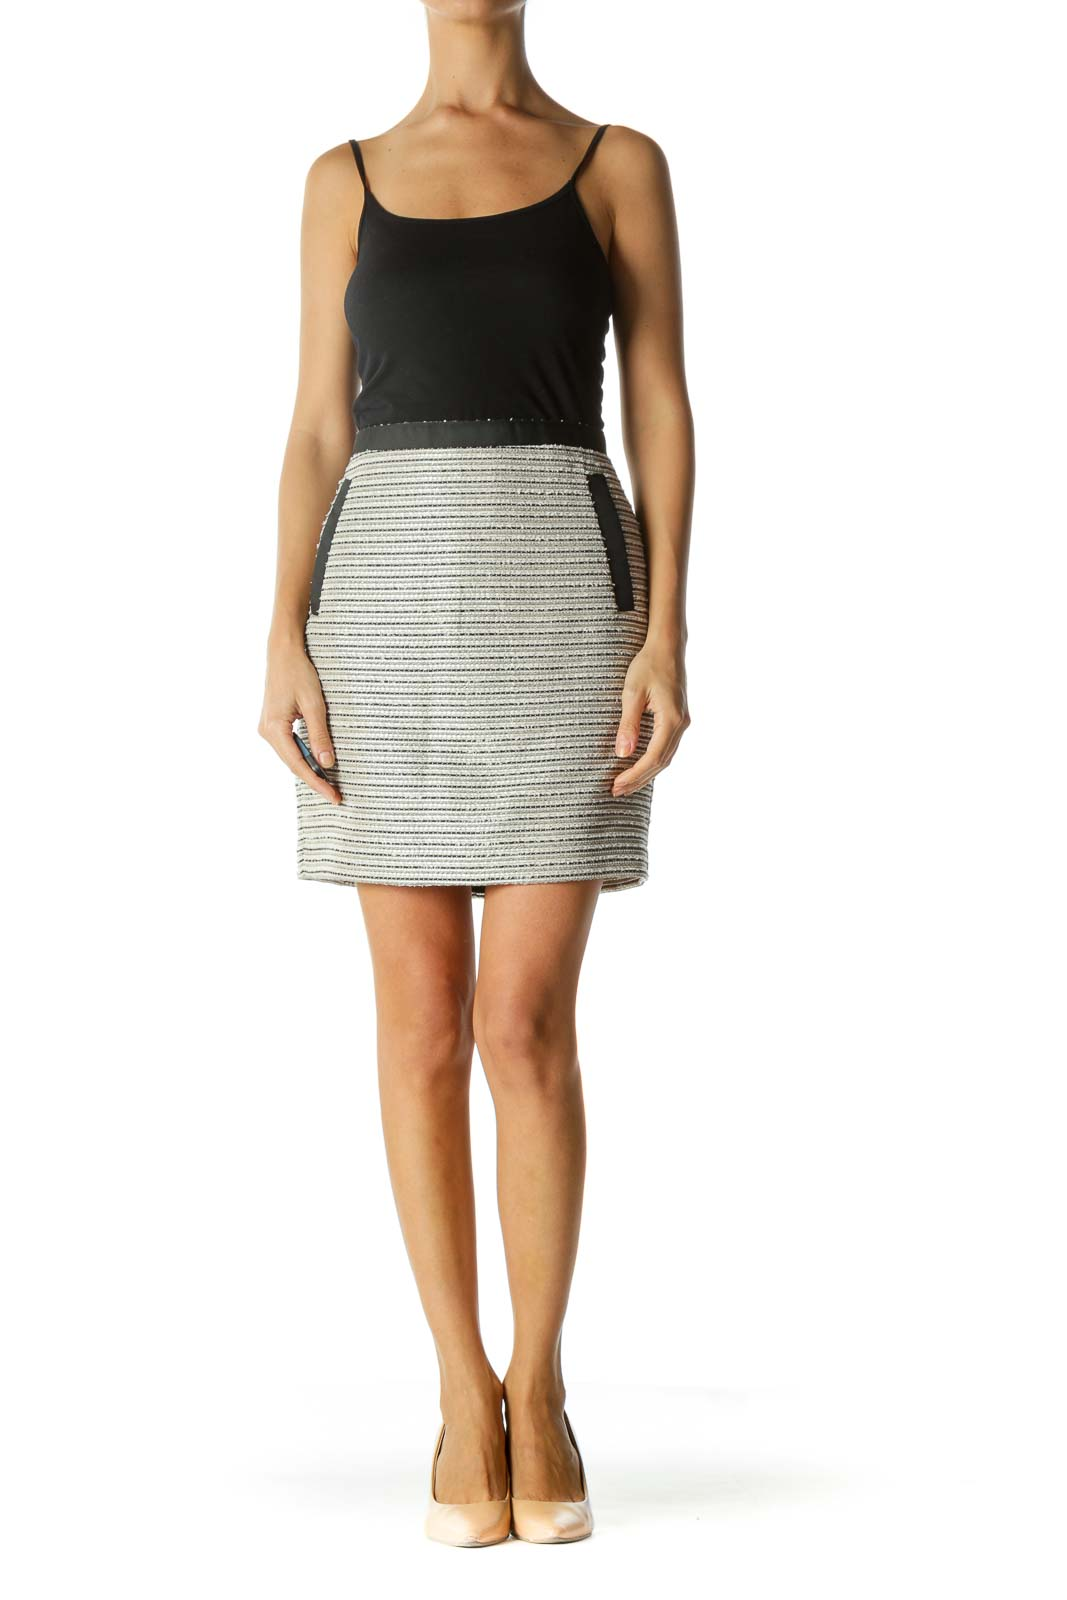 Beige and Black Jacquard Pencil Skirt